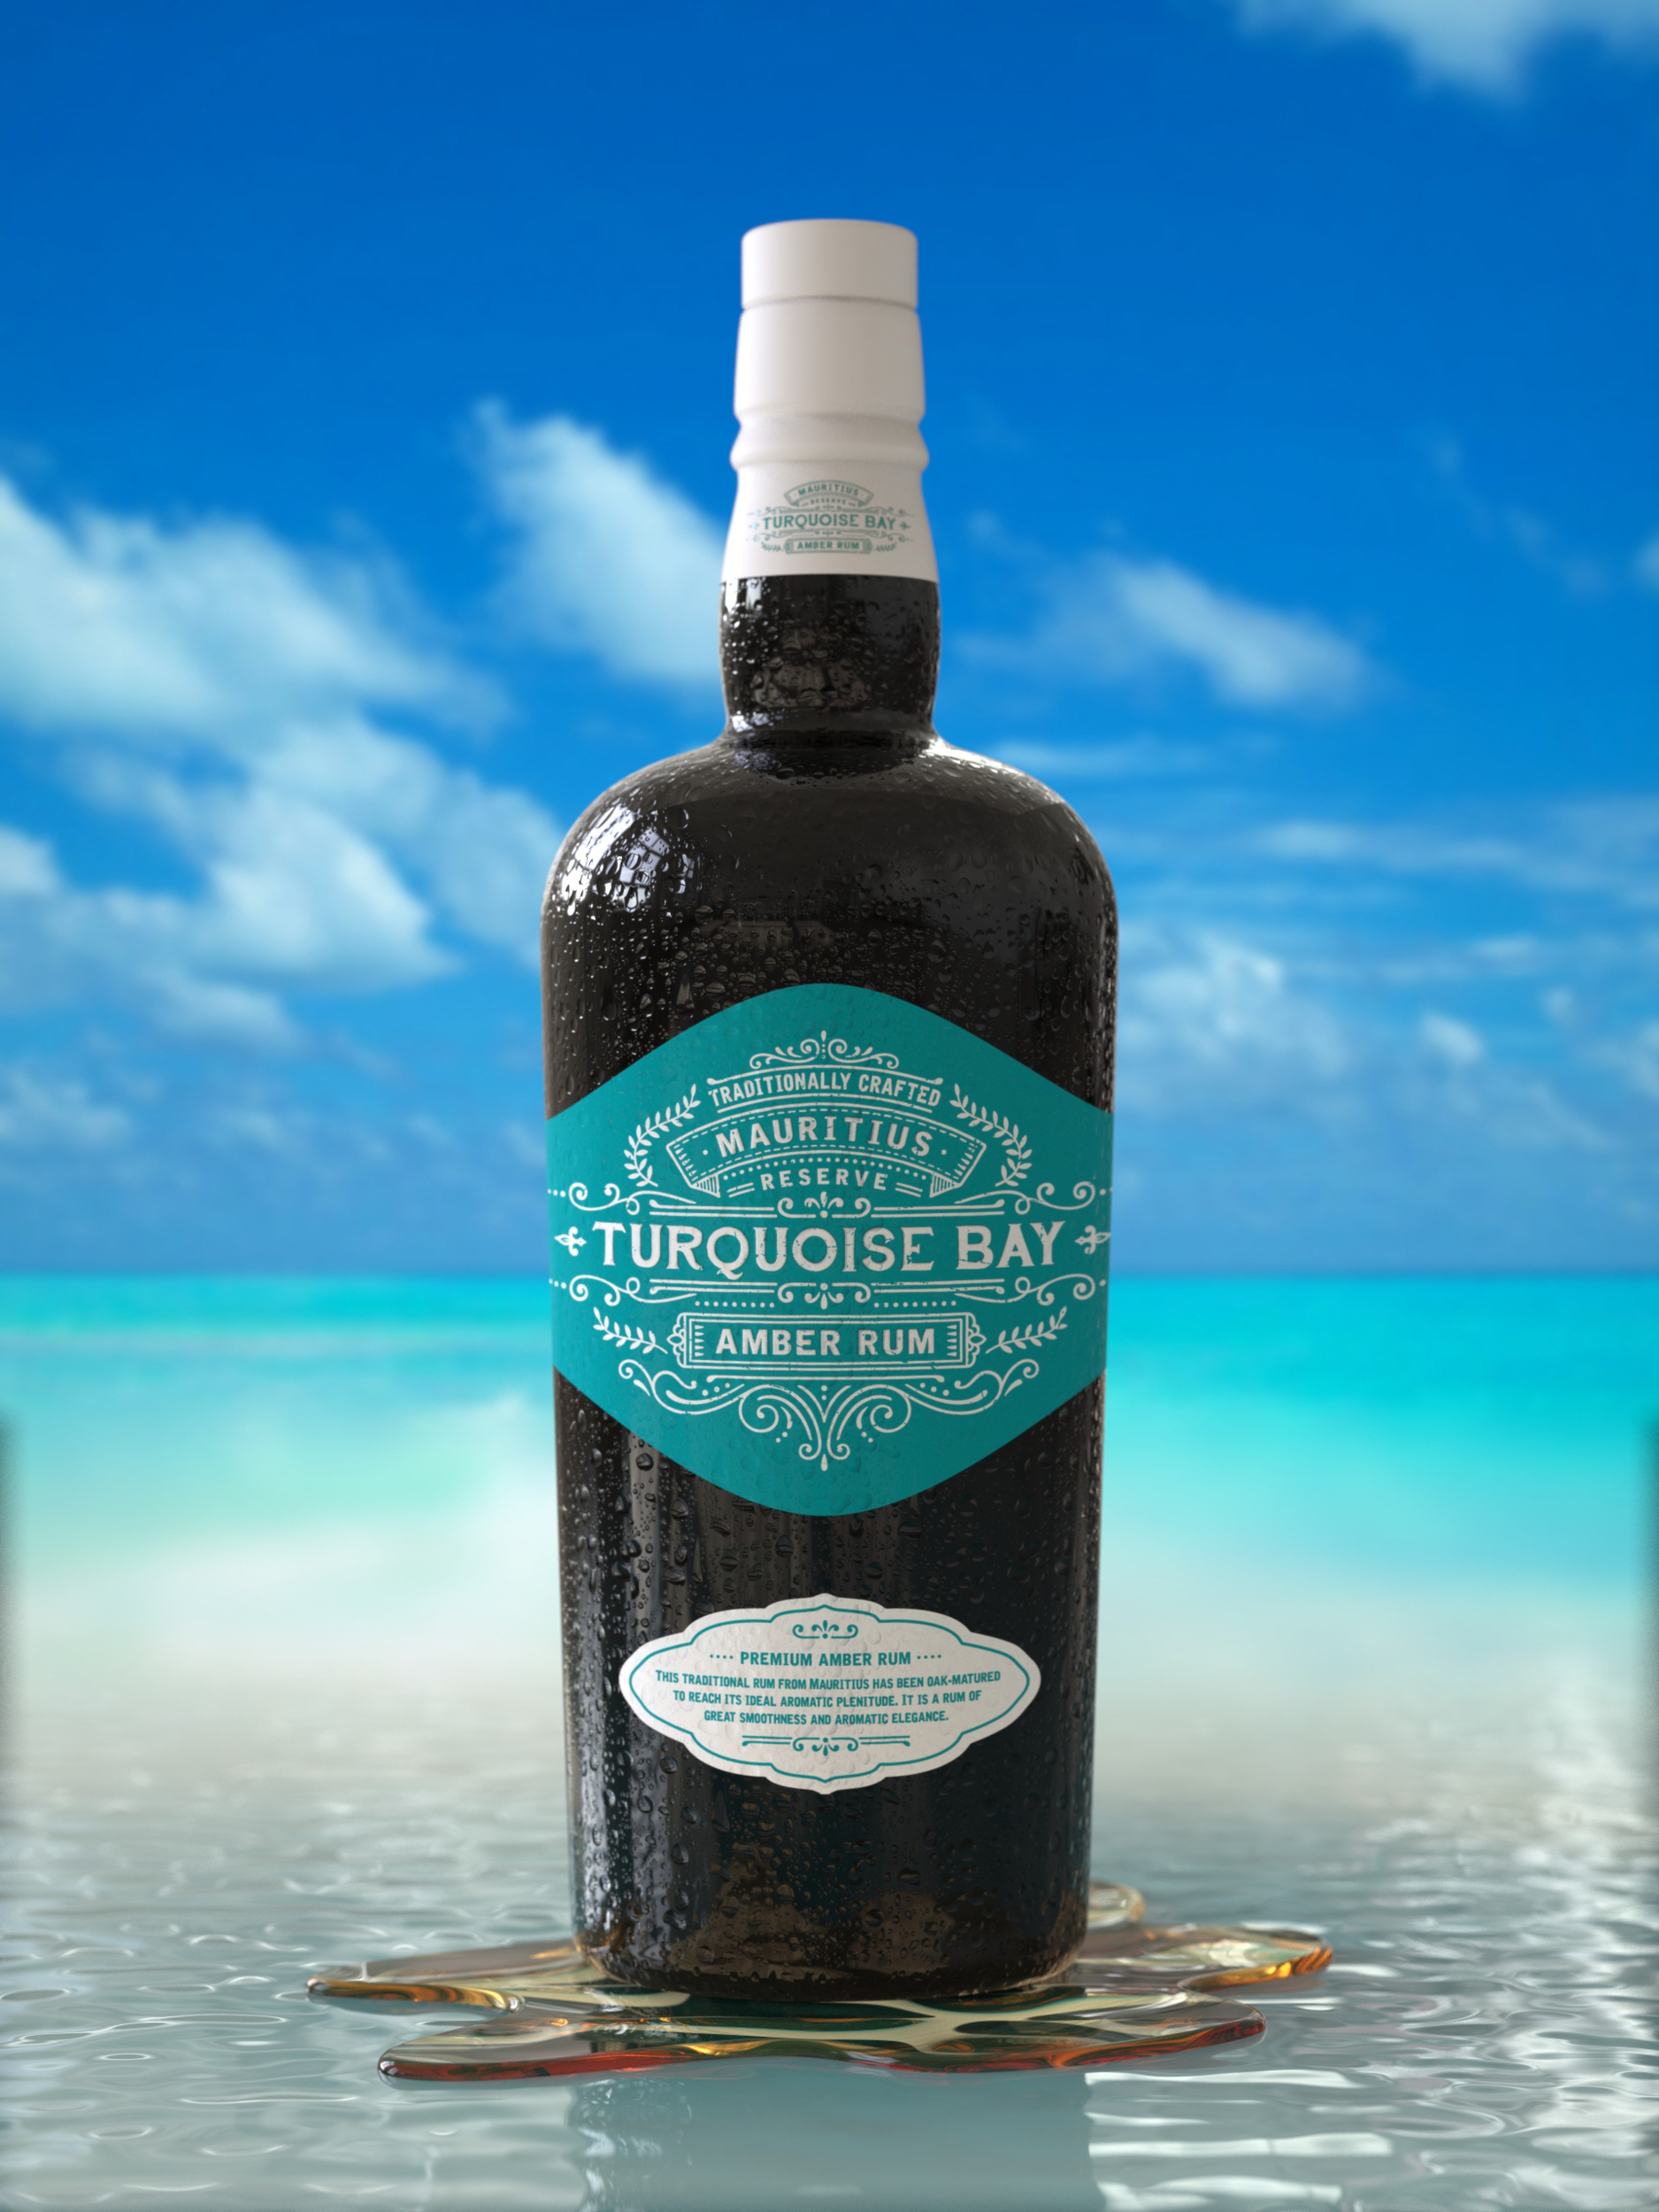 Rhum Turquoise Bay www.luxfood-shop.com